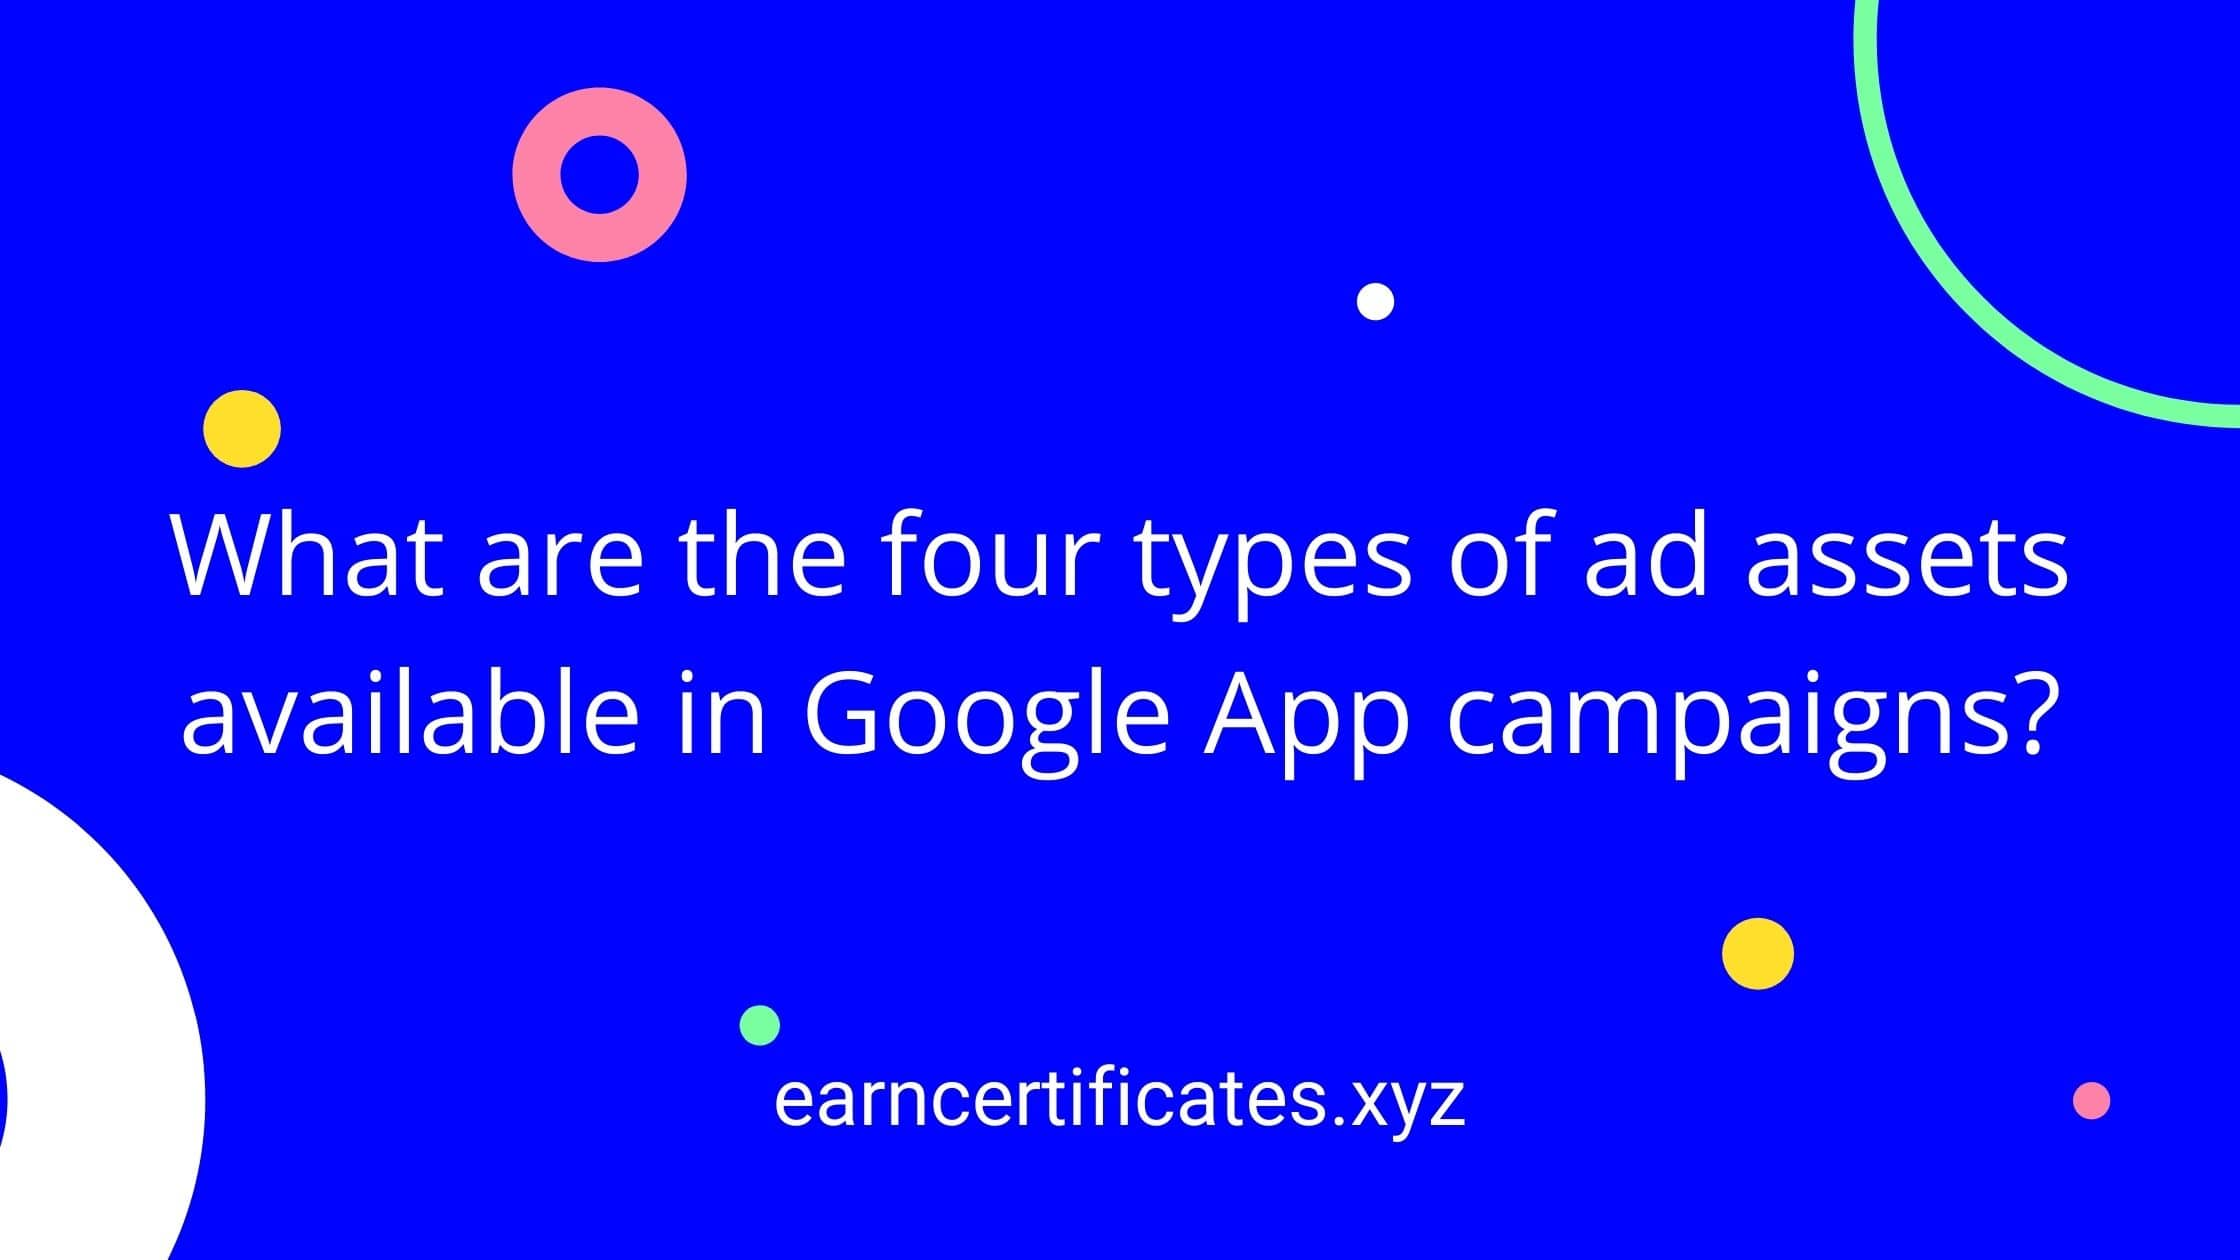 What are the four types of ad assets available in Google App campaigns?